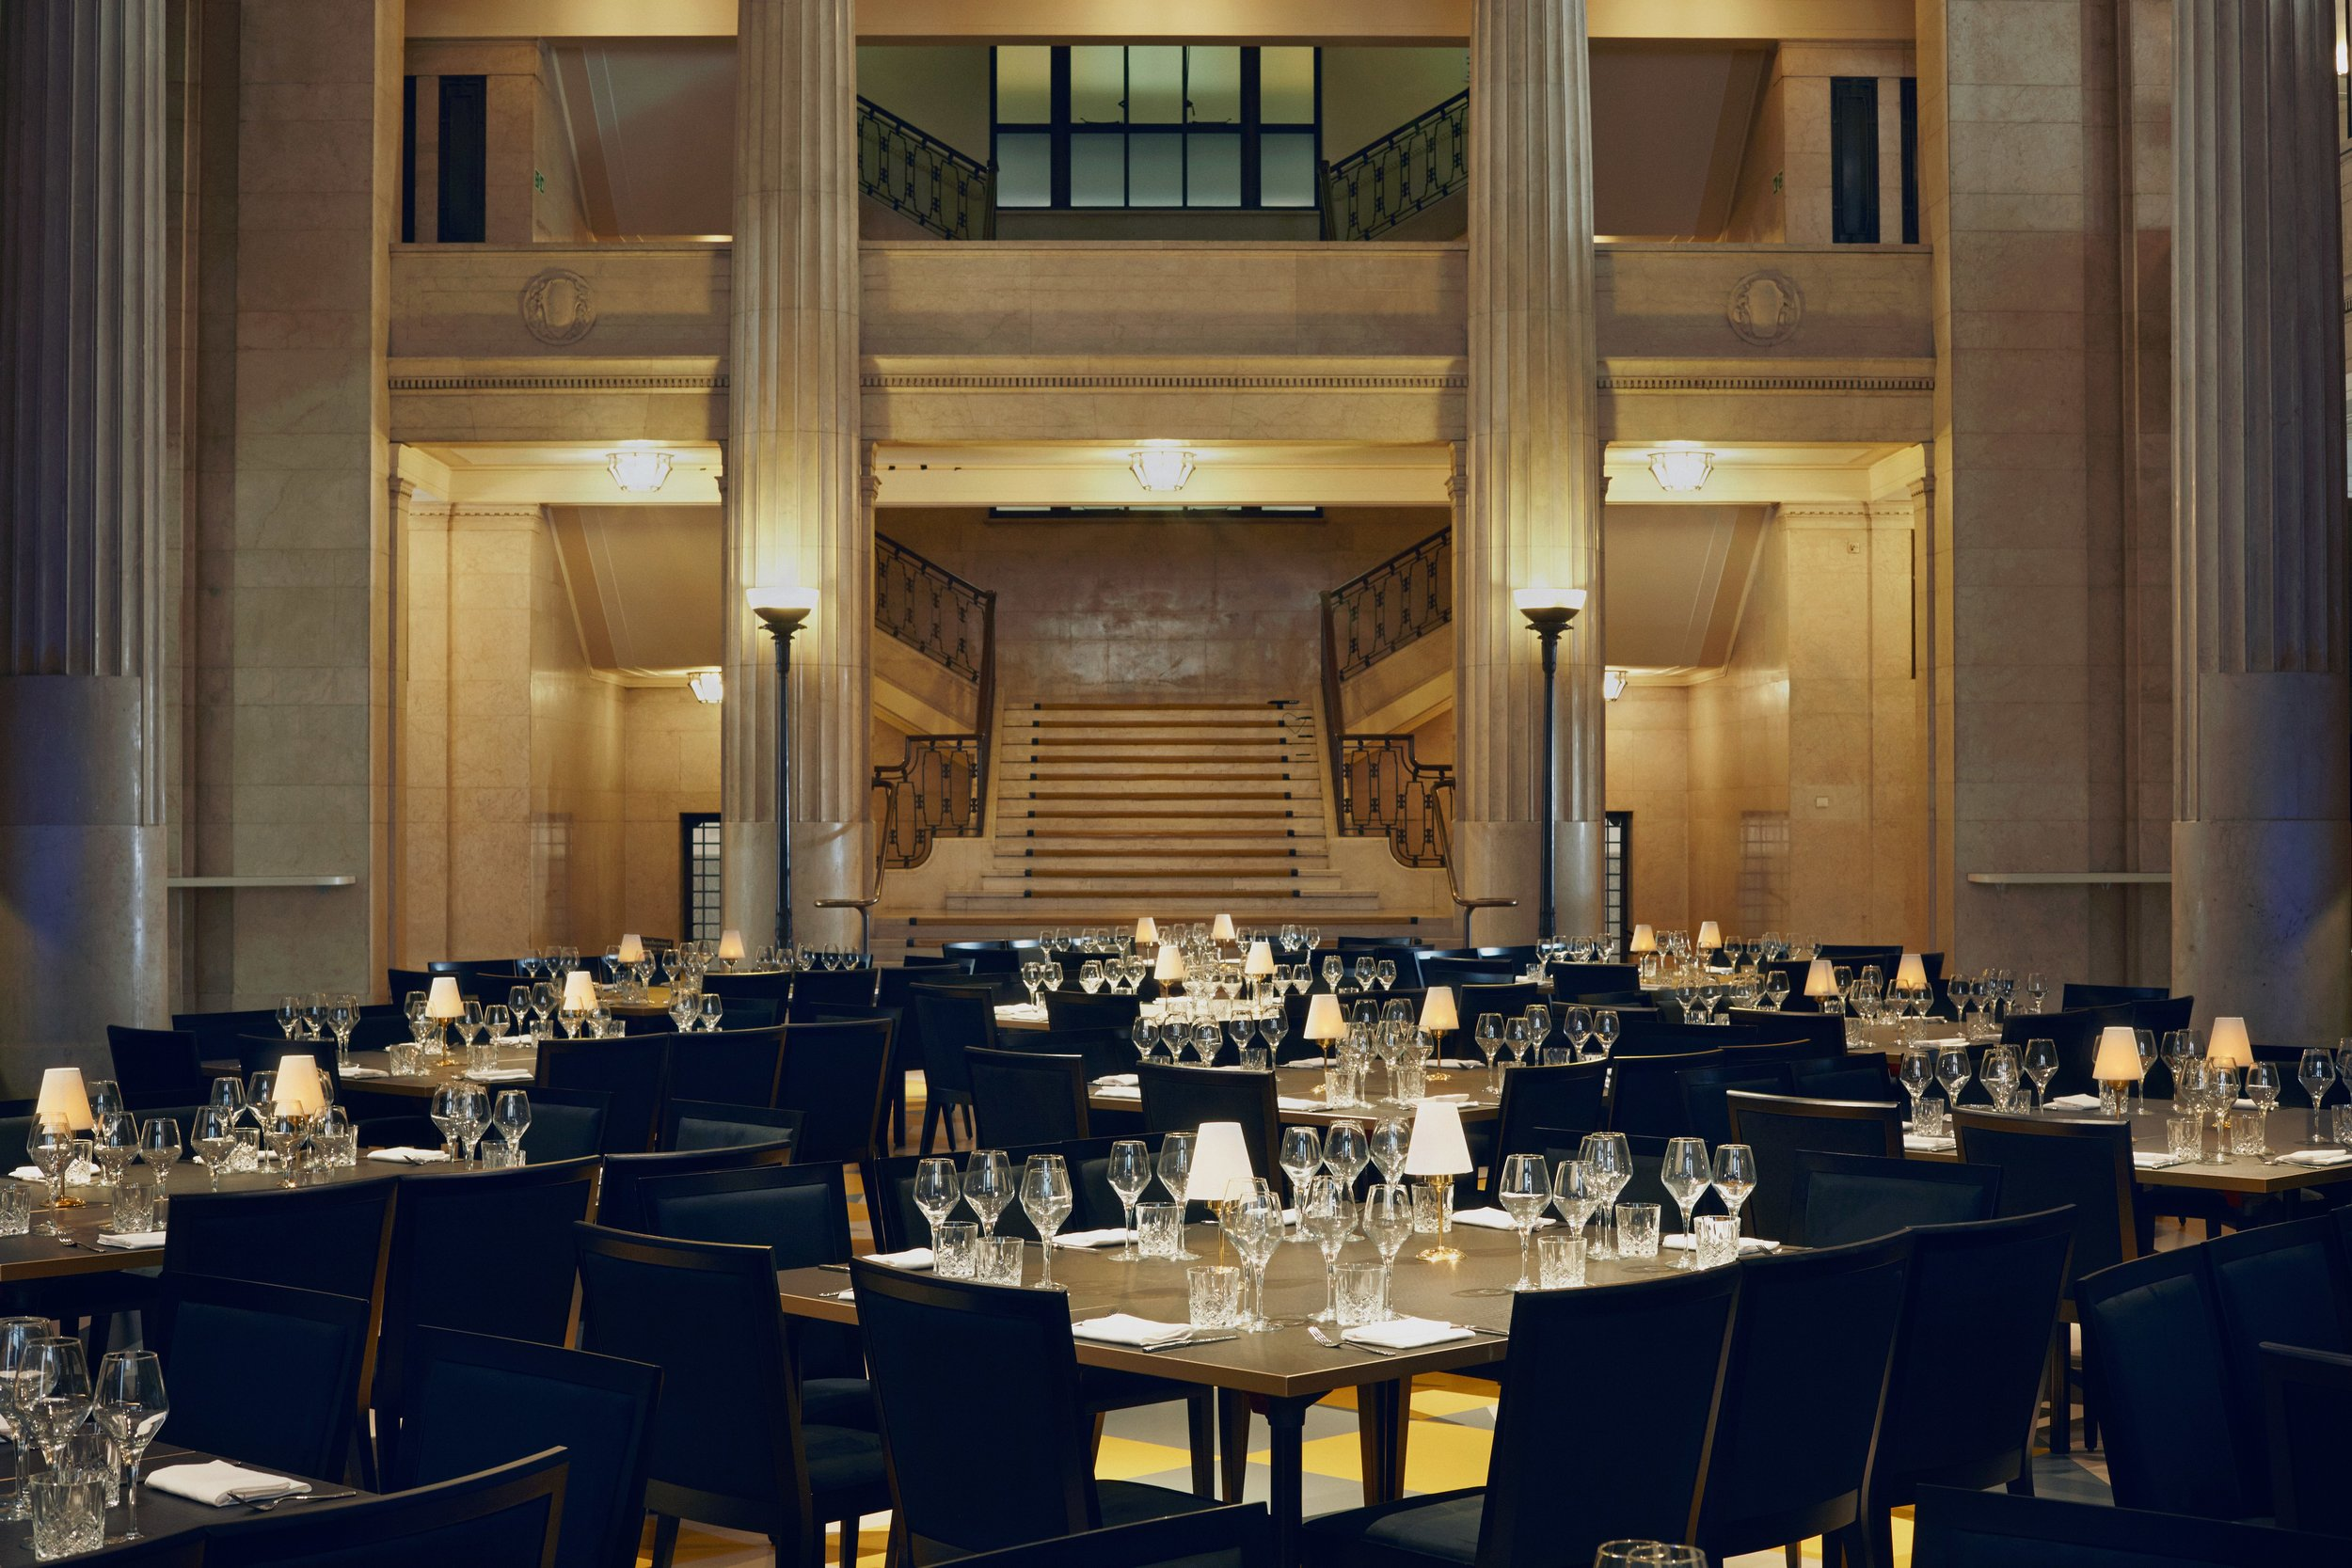 Camm & Hooper - Currently targeting properties in the City and West End of London.Camm & Hooper revolutionise event space in iconic London buildings. Contact Debra Ward, Managing Director / debra@camm-hooper.co.ukSee more...